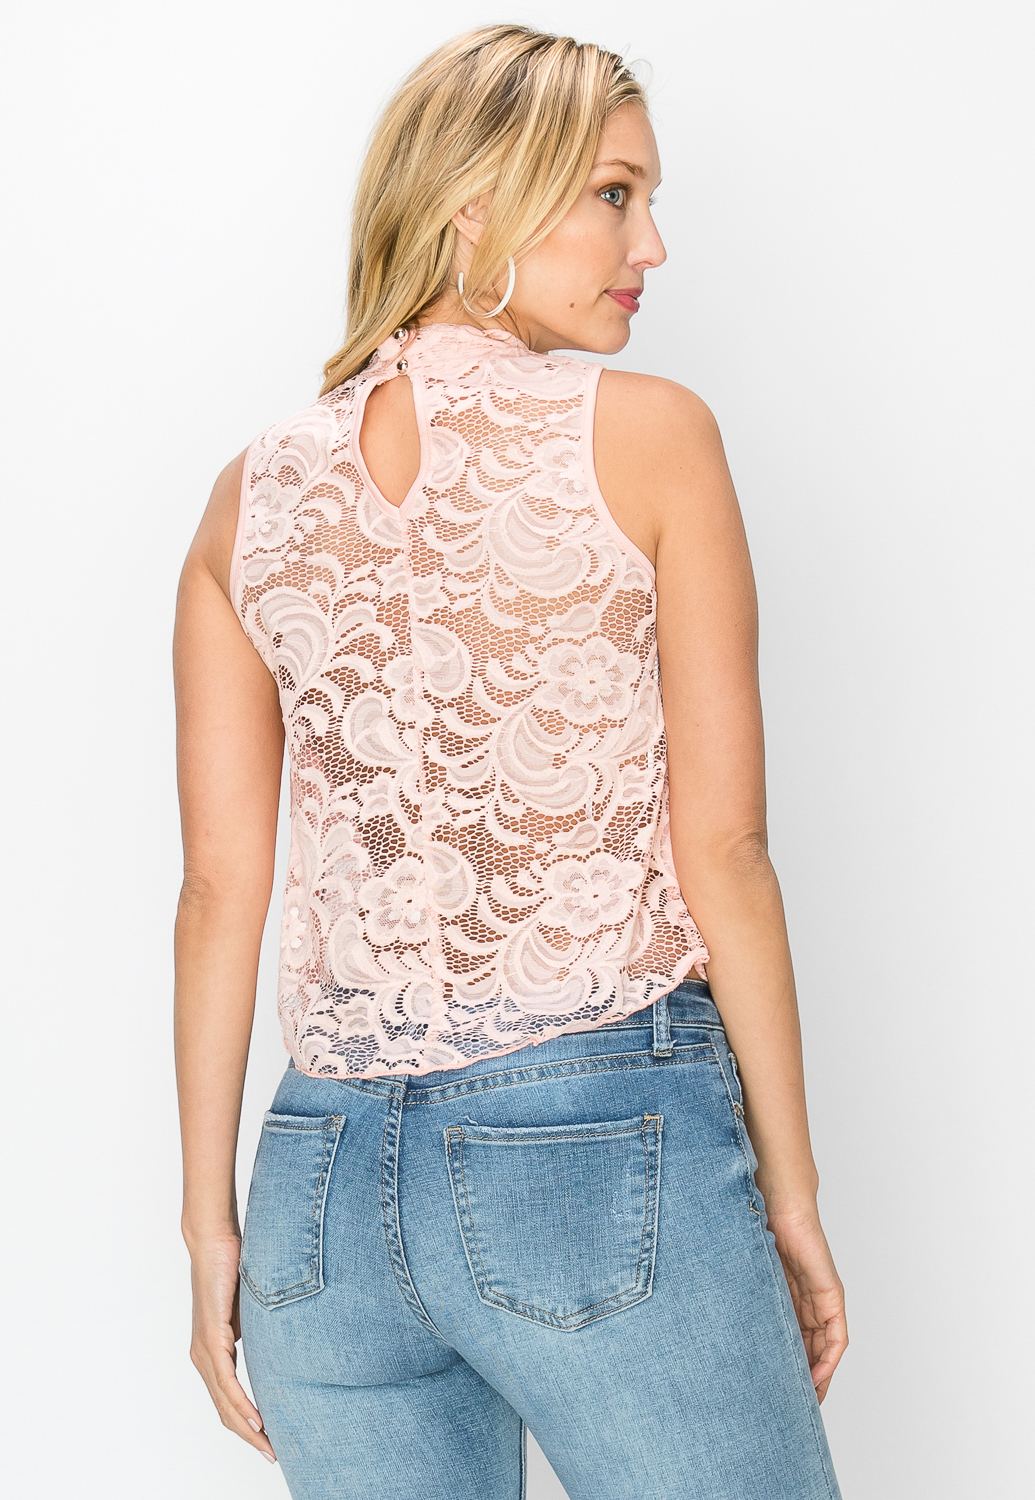 Floral Lace W/Necklace Dressy Top